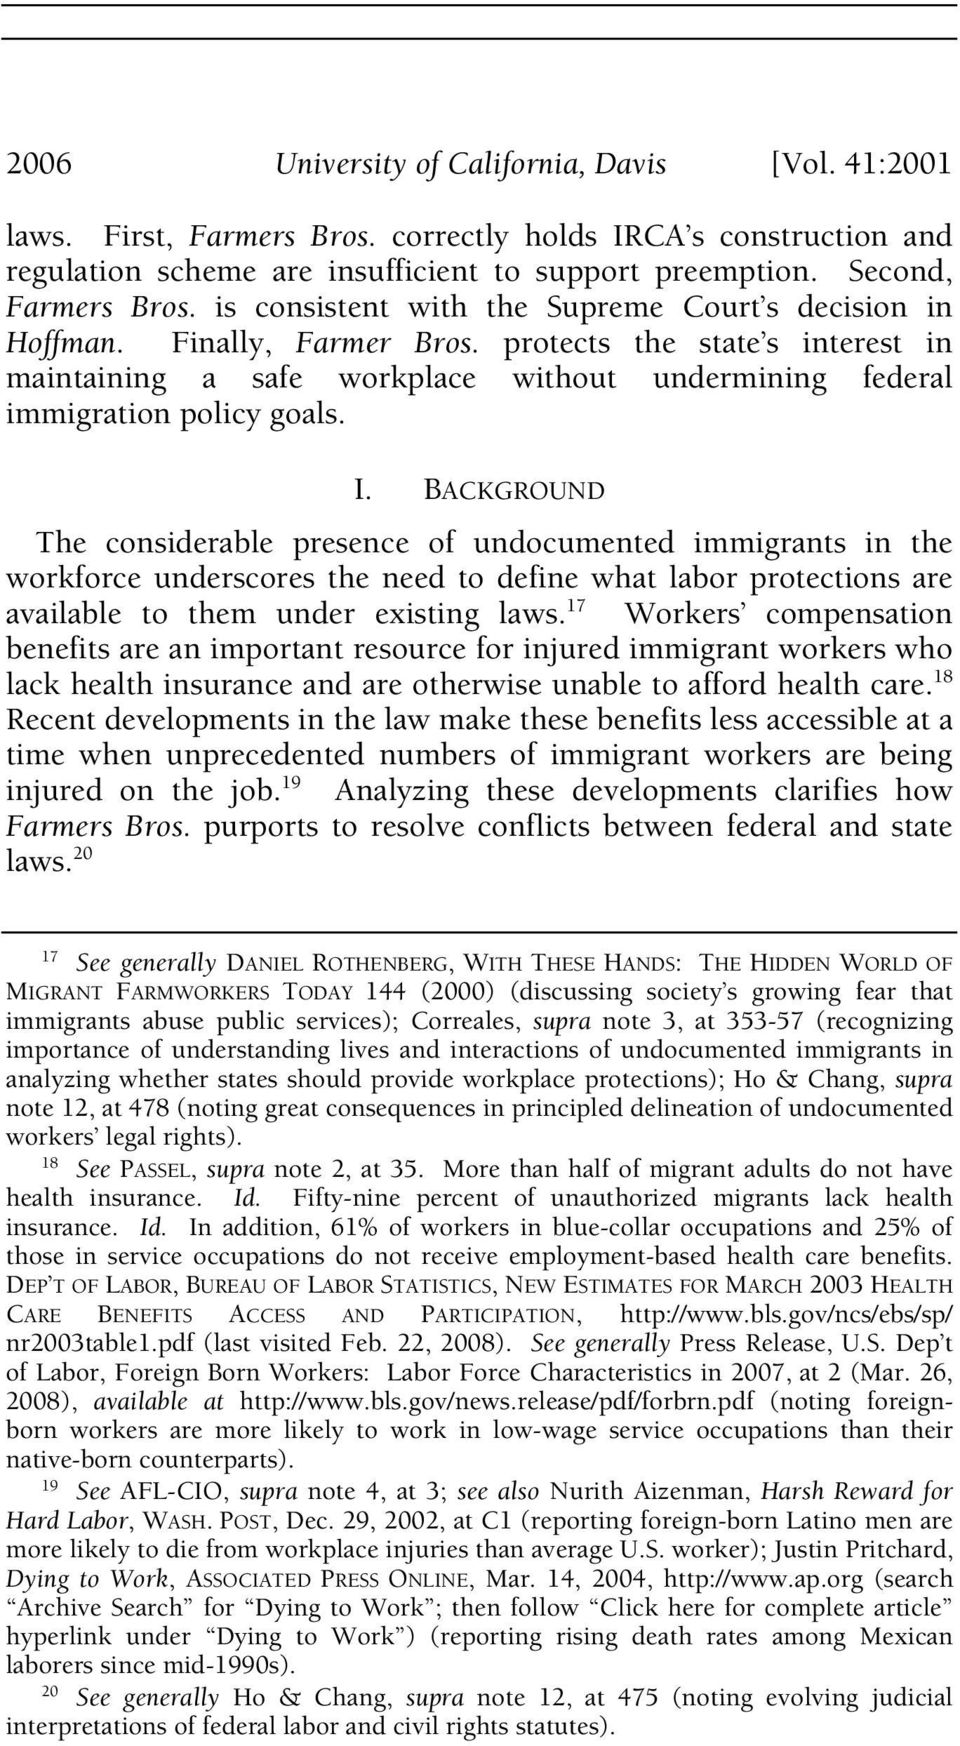 BACKGROUND The considerable presence of undocumented immigrants in the workforce underscores the need to define what labor protections are available to them under existing laws.